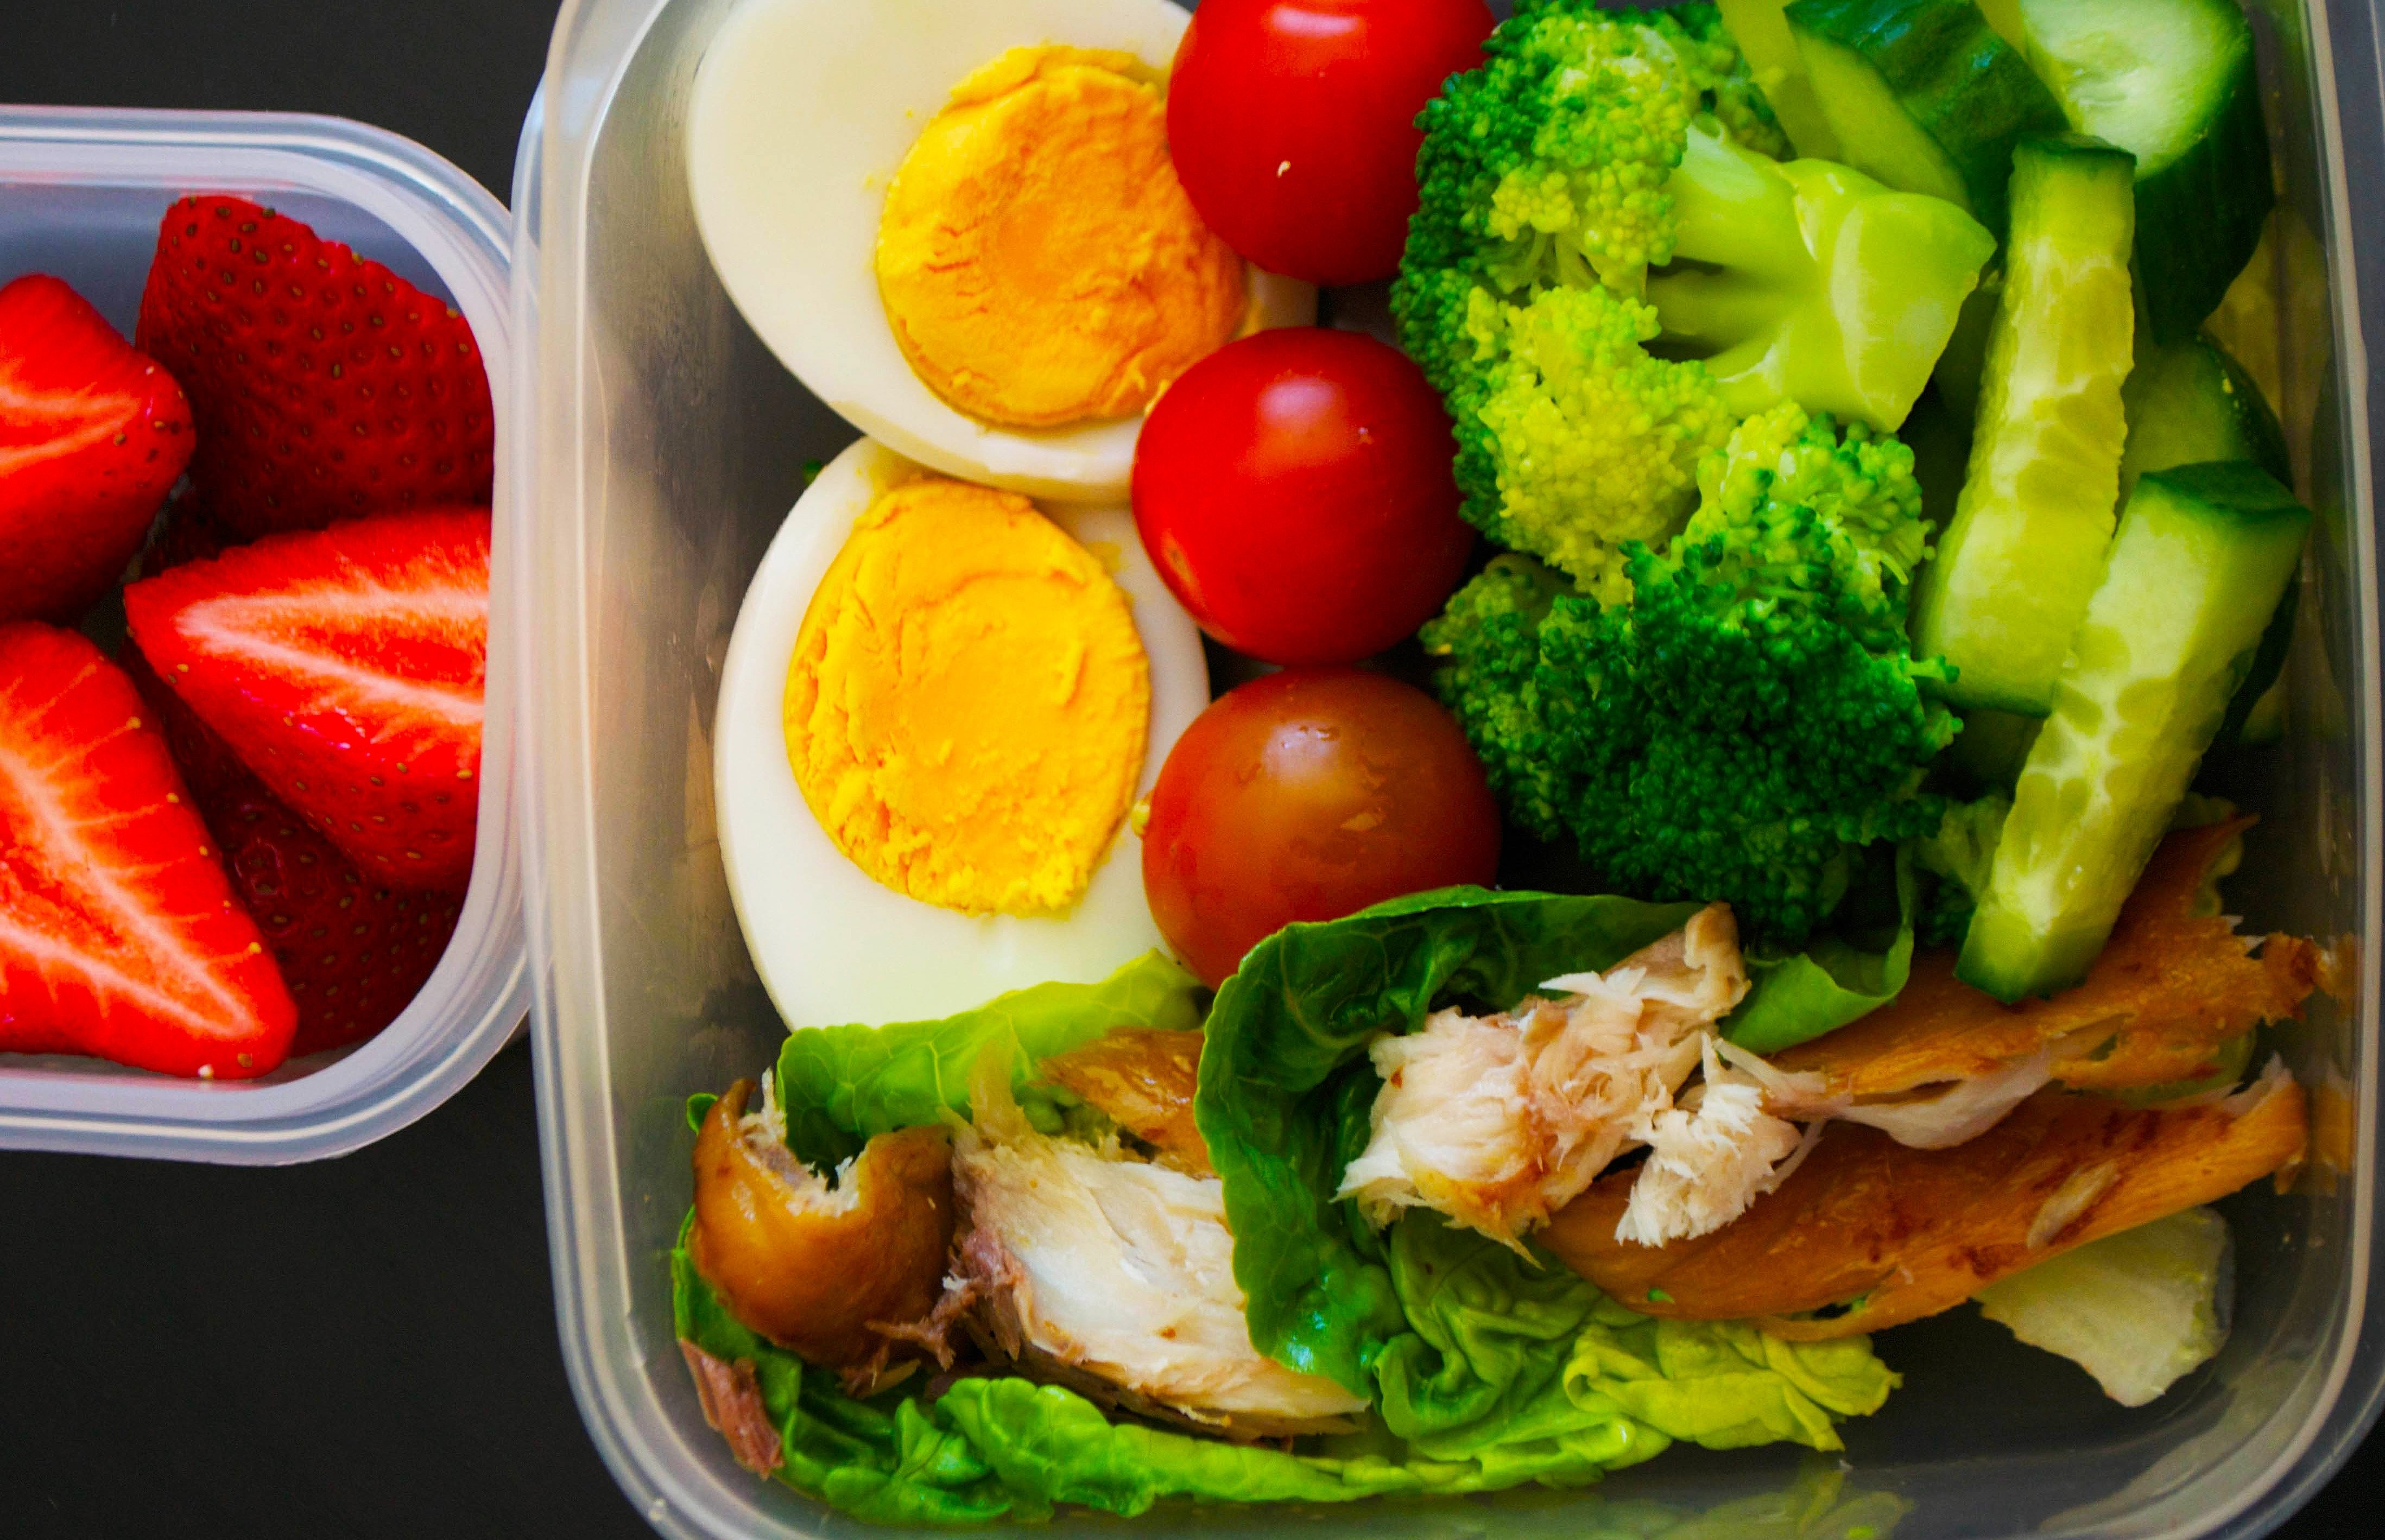 10 Best Paleo Lunch Ideas At Work 5 days of paleo packed lunches for kids and adults tooprimal eye 1